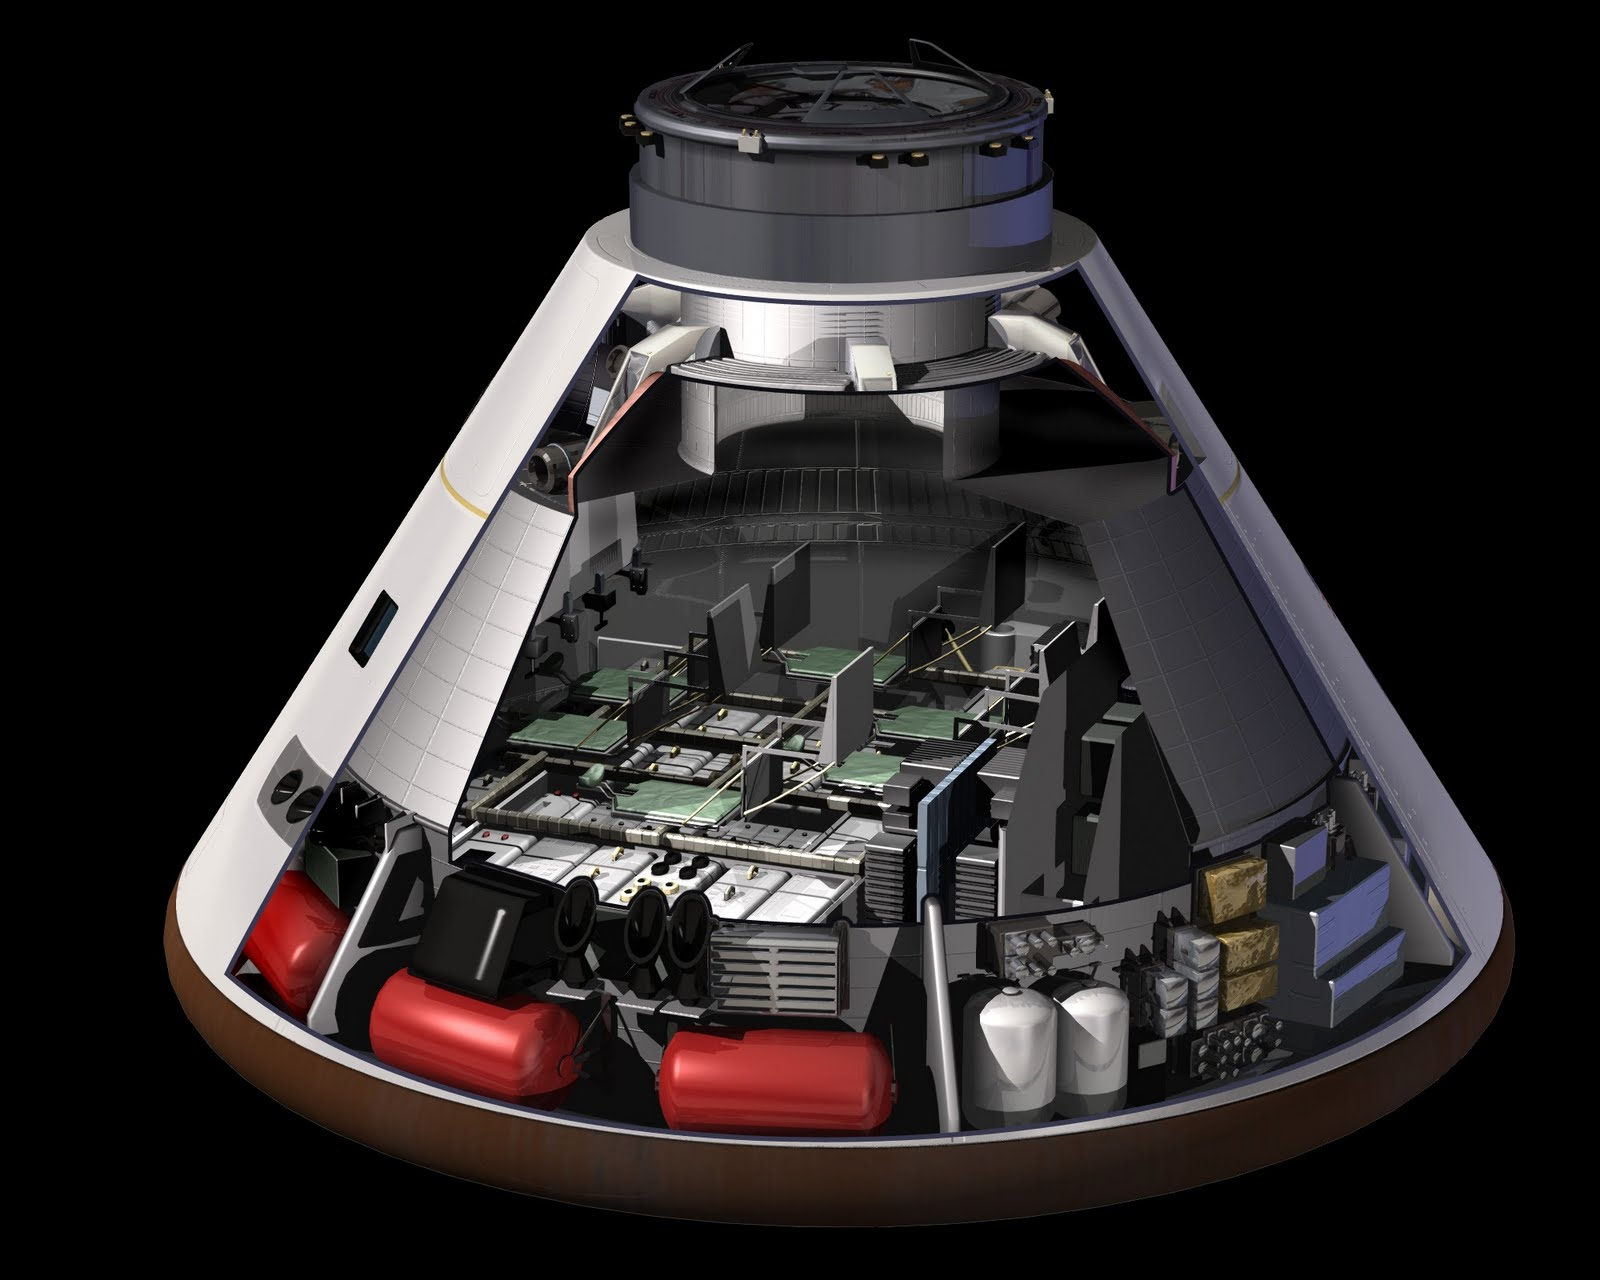 orion spacecraft cutaway - photo #2